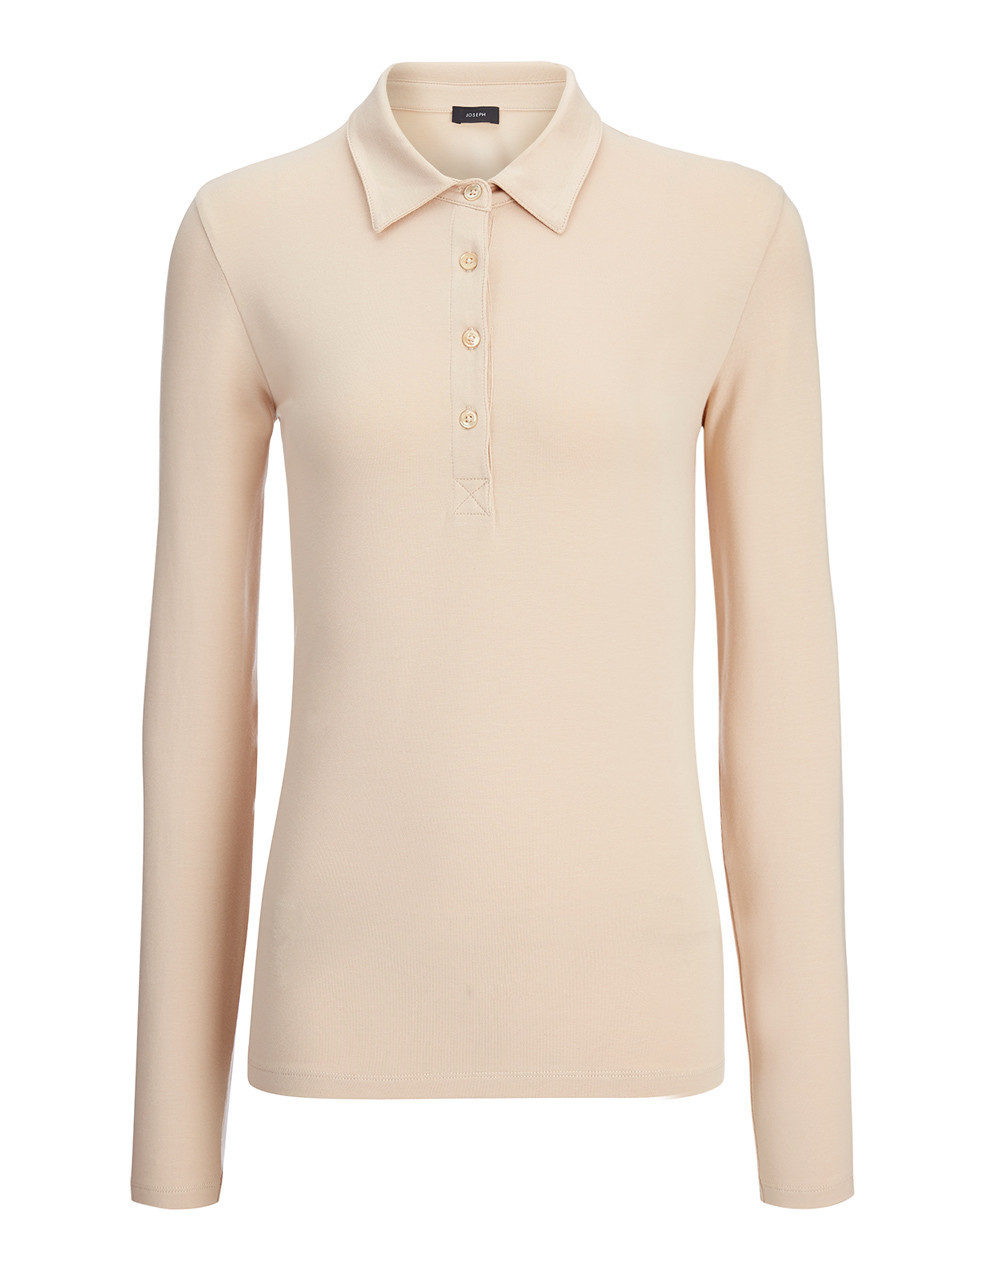 Cotton Lyocell Stretch Polo In Pearl - neckline: shirt collar/peter pan/zip with opening; pattern: plain; style: polo shirt; predominant colour: nude; occasions: casual; length: standard; fibres: cotton - stretch; fit: body skimming; sleeve length: long sleeve; sleeve style: standard; pattern type: fabric; texture group: jersey - stretchy/drapey; season: s/s 2016; wardrobe: basic